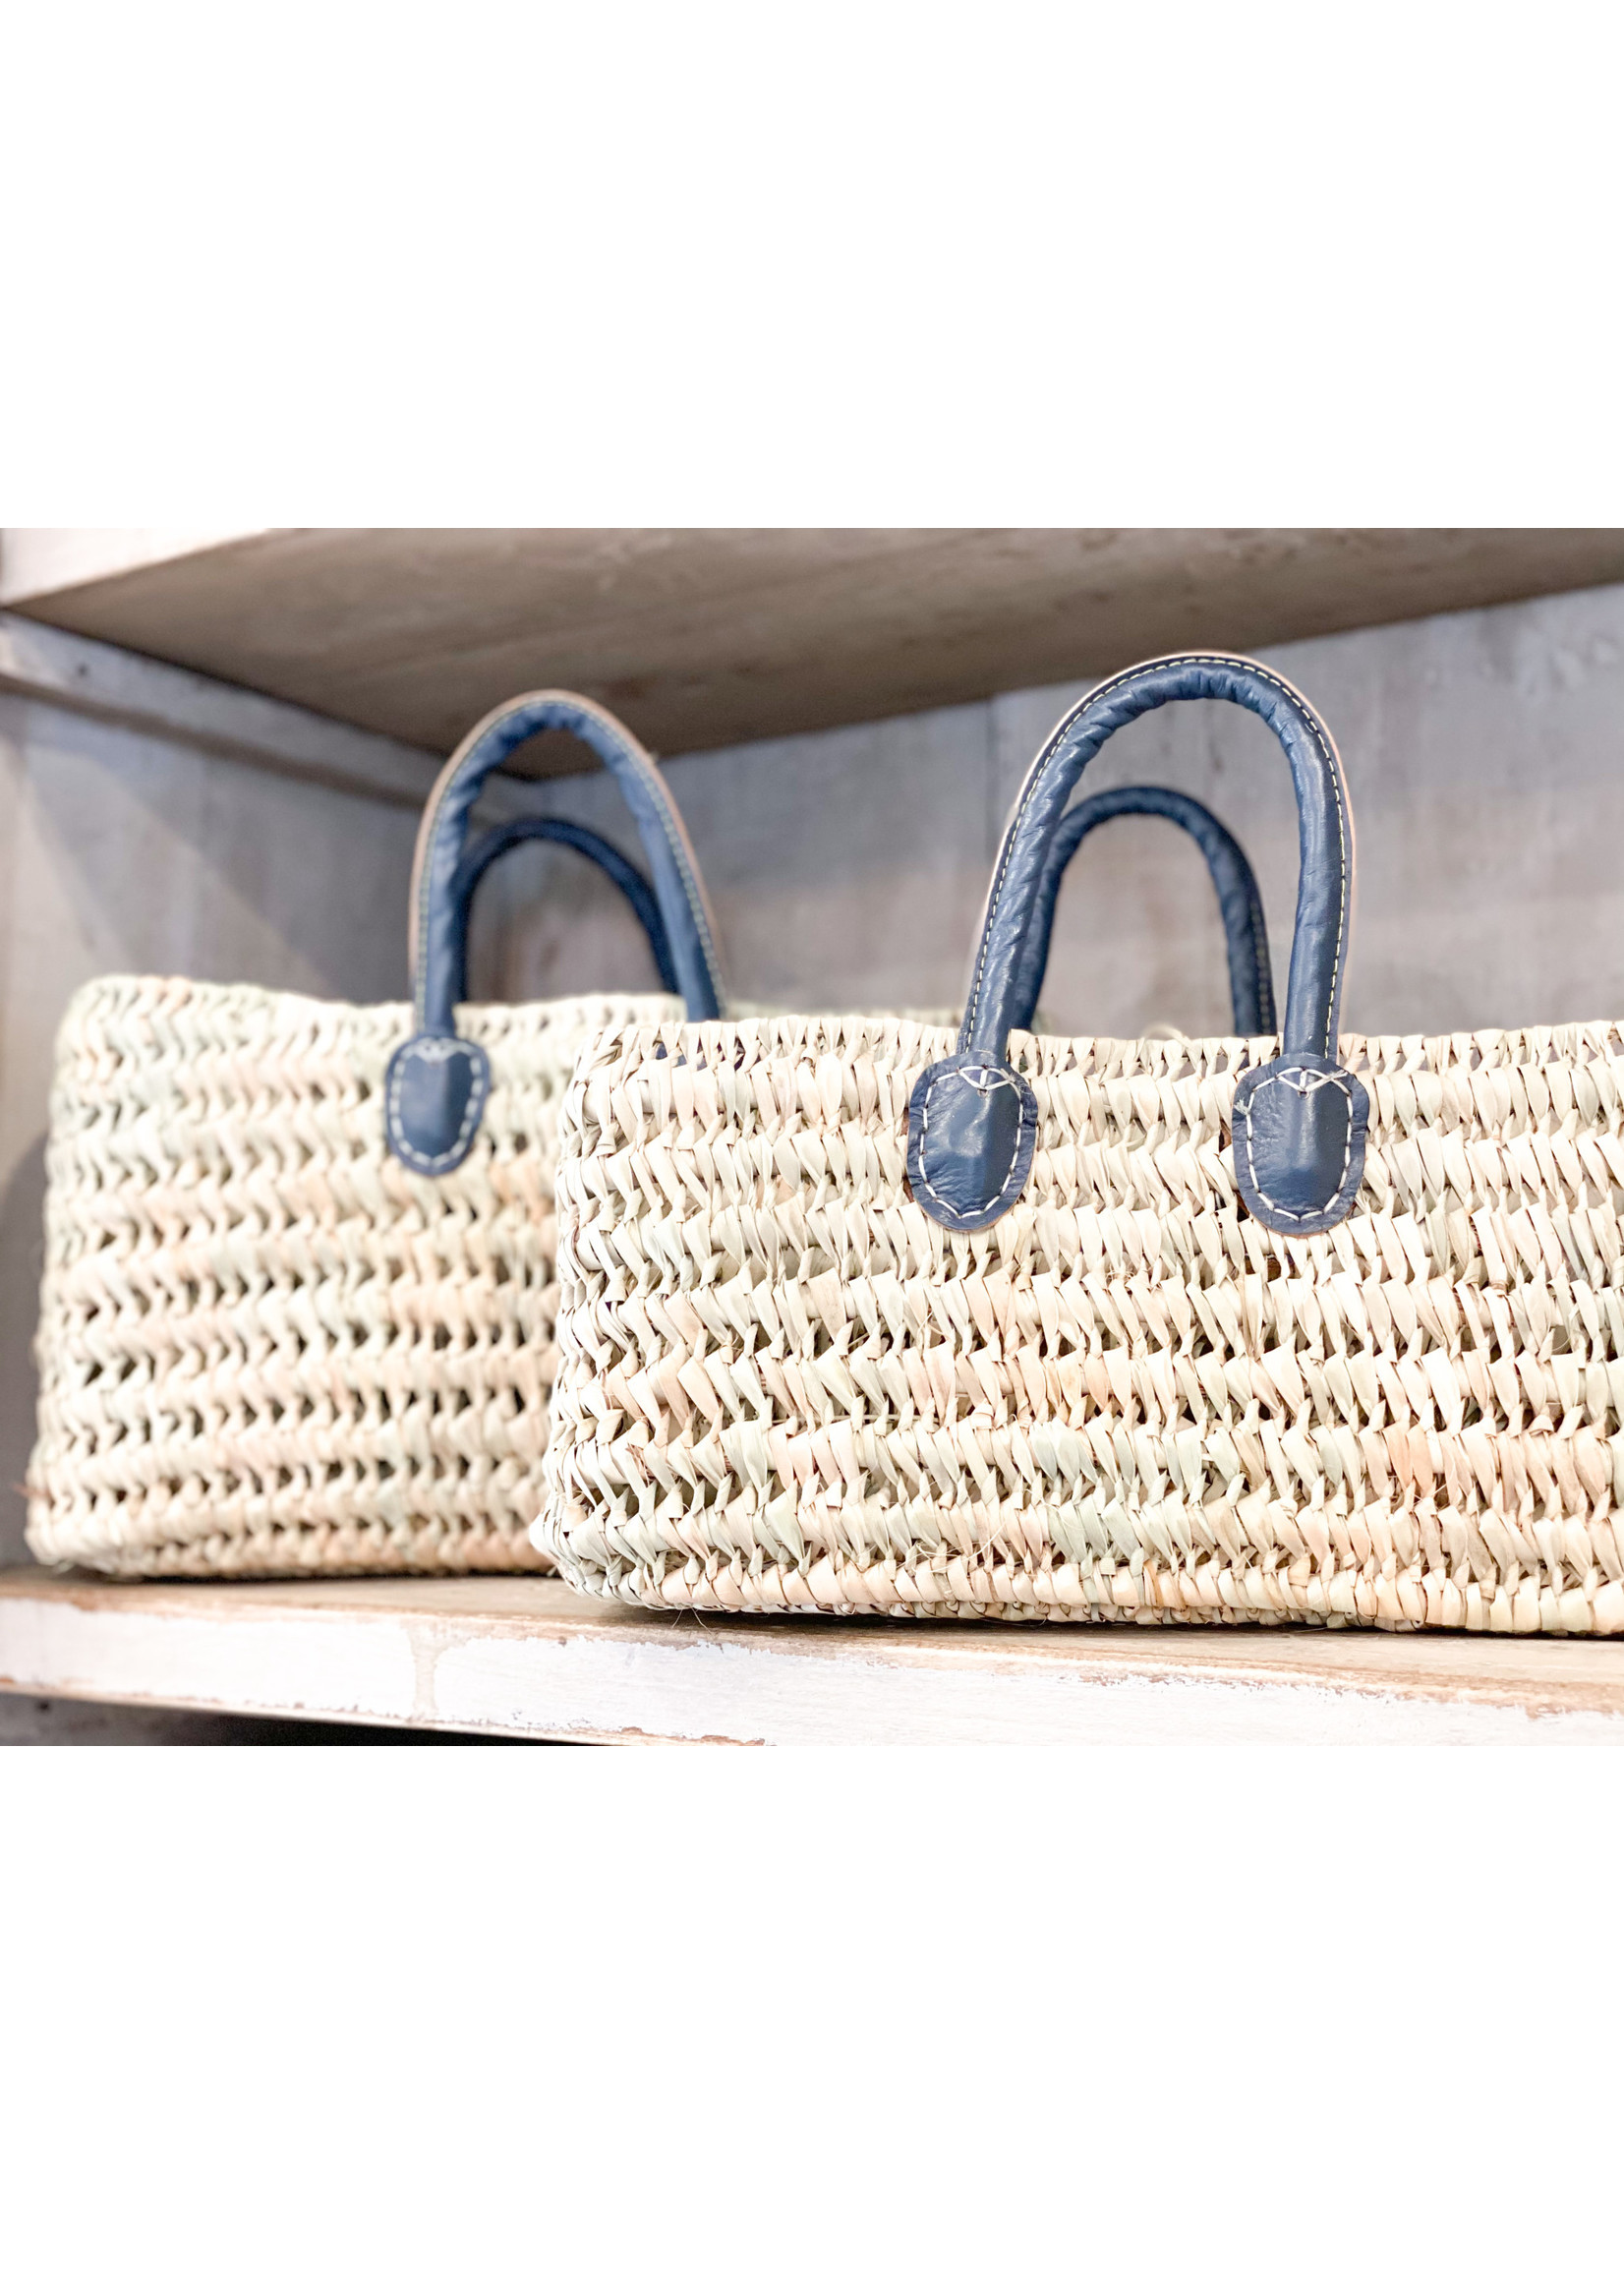 French Market Tote - Casablanca Large - Blue